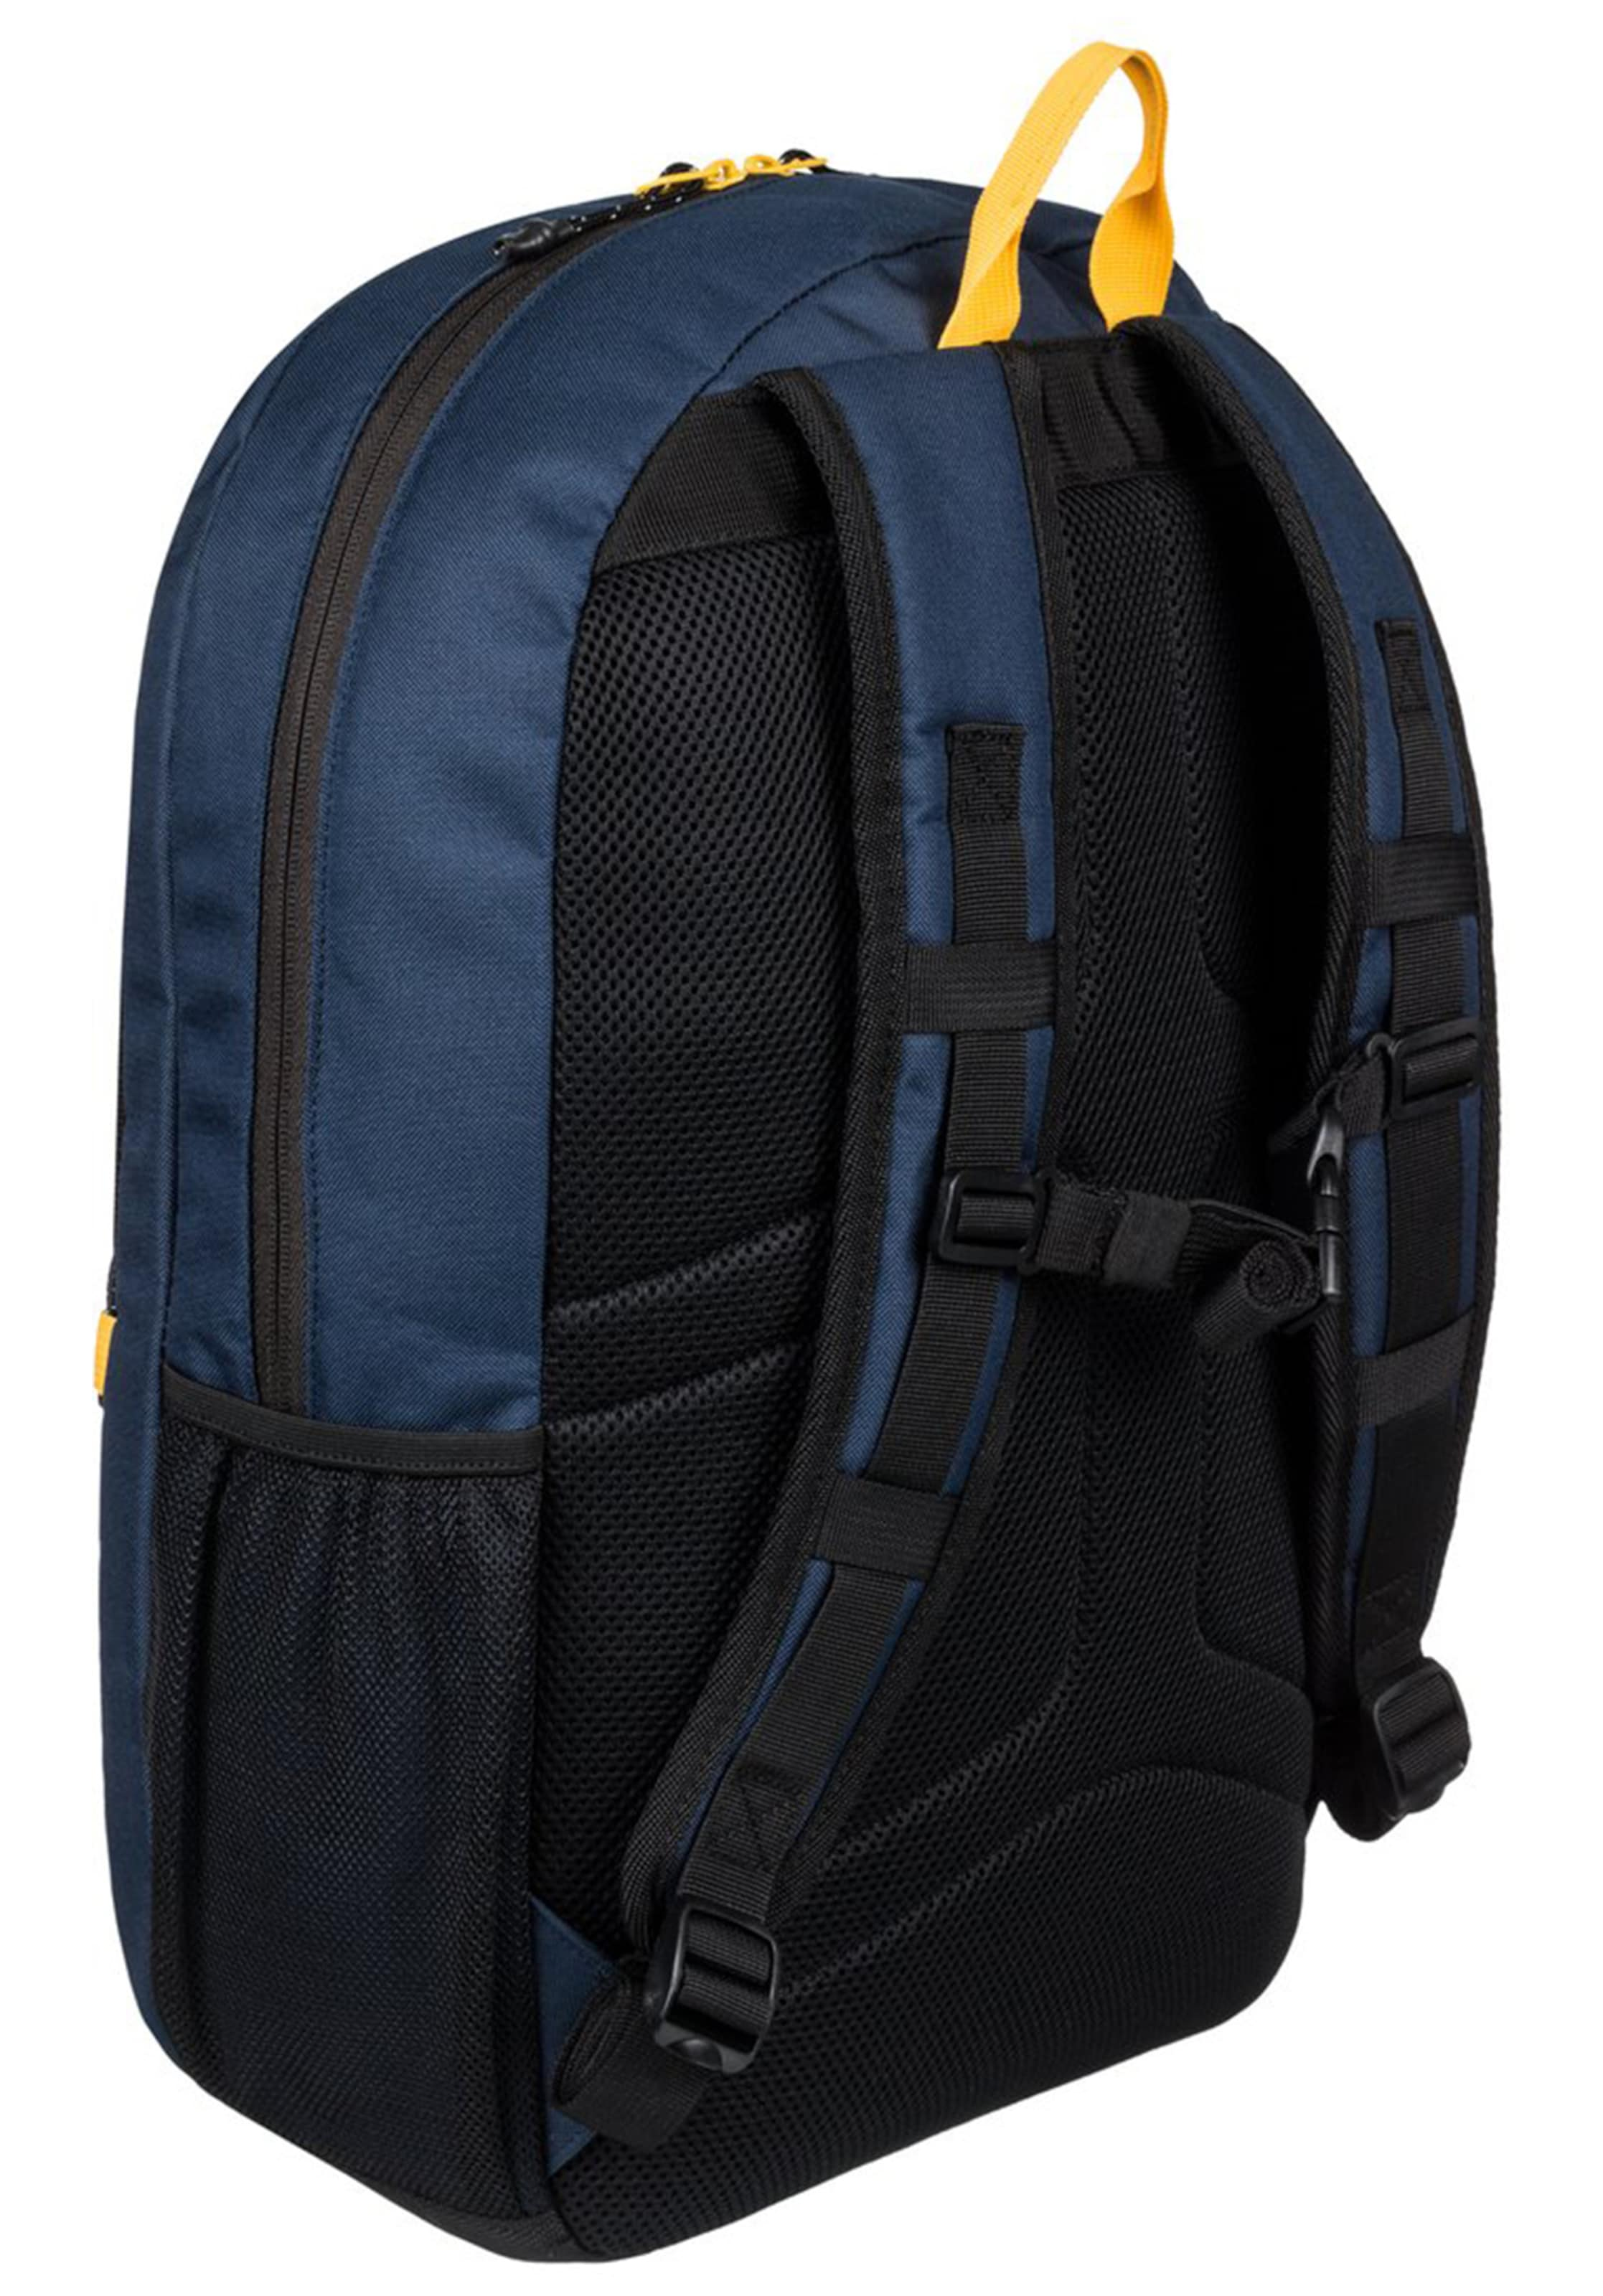 Rucksack In MarineGelb Dc Back' Schwarz 'circle 23l Shoes 8nmwN0vPyO